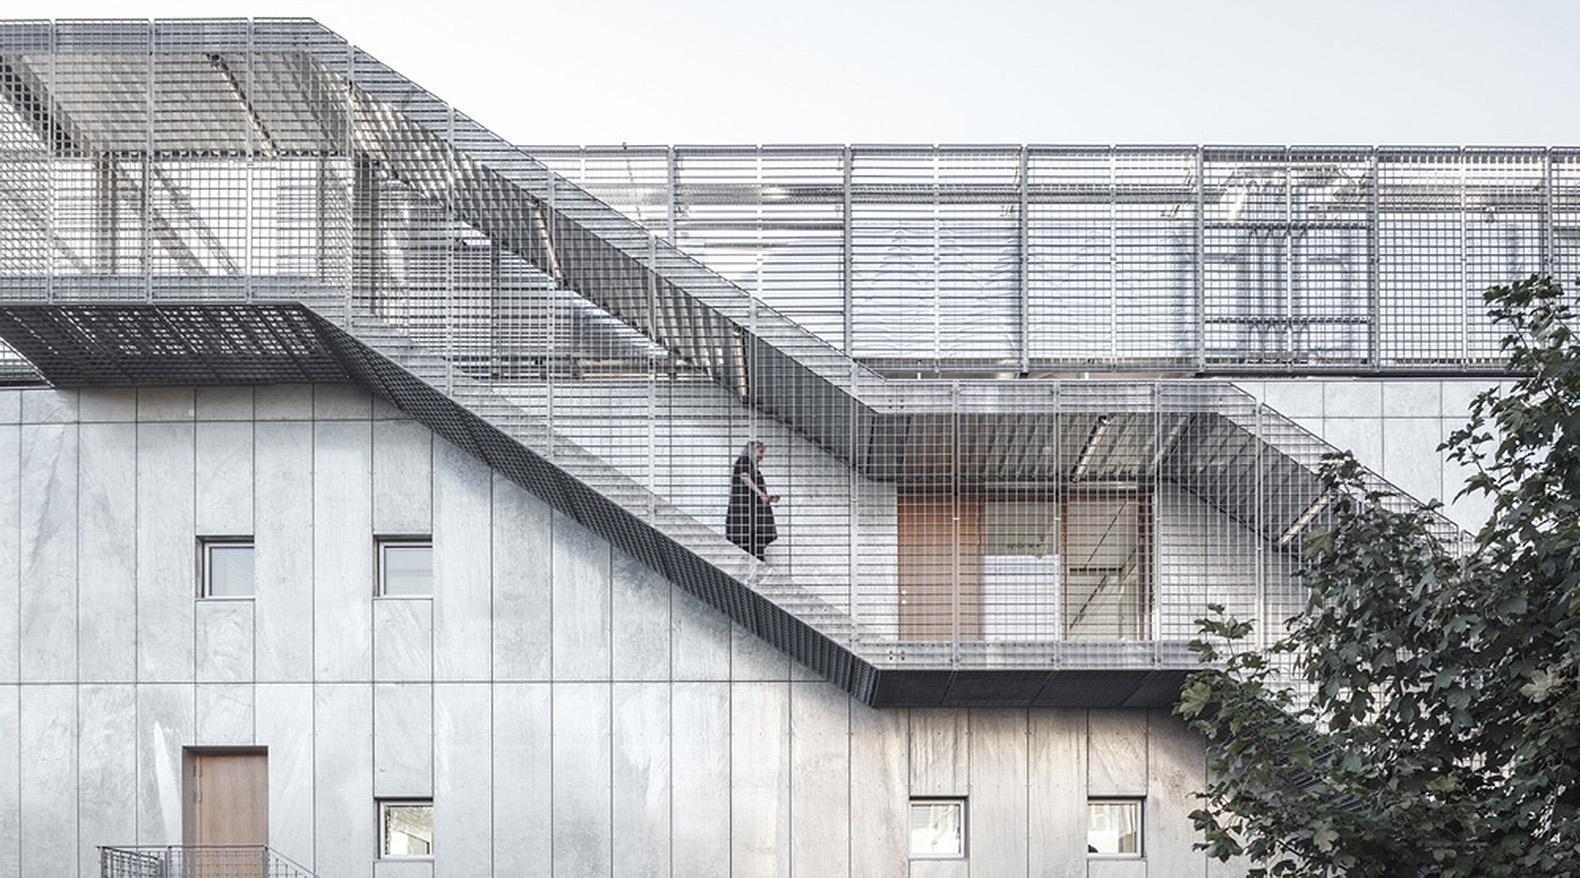 Concrete Building Facade : Architects cracked this concrete building to fill its